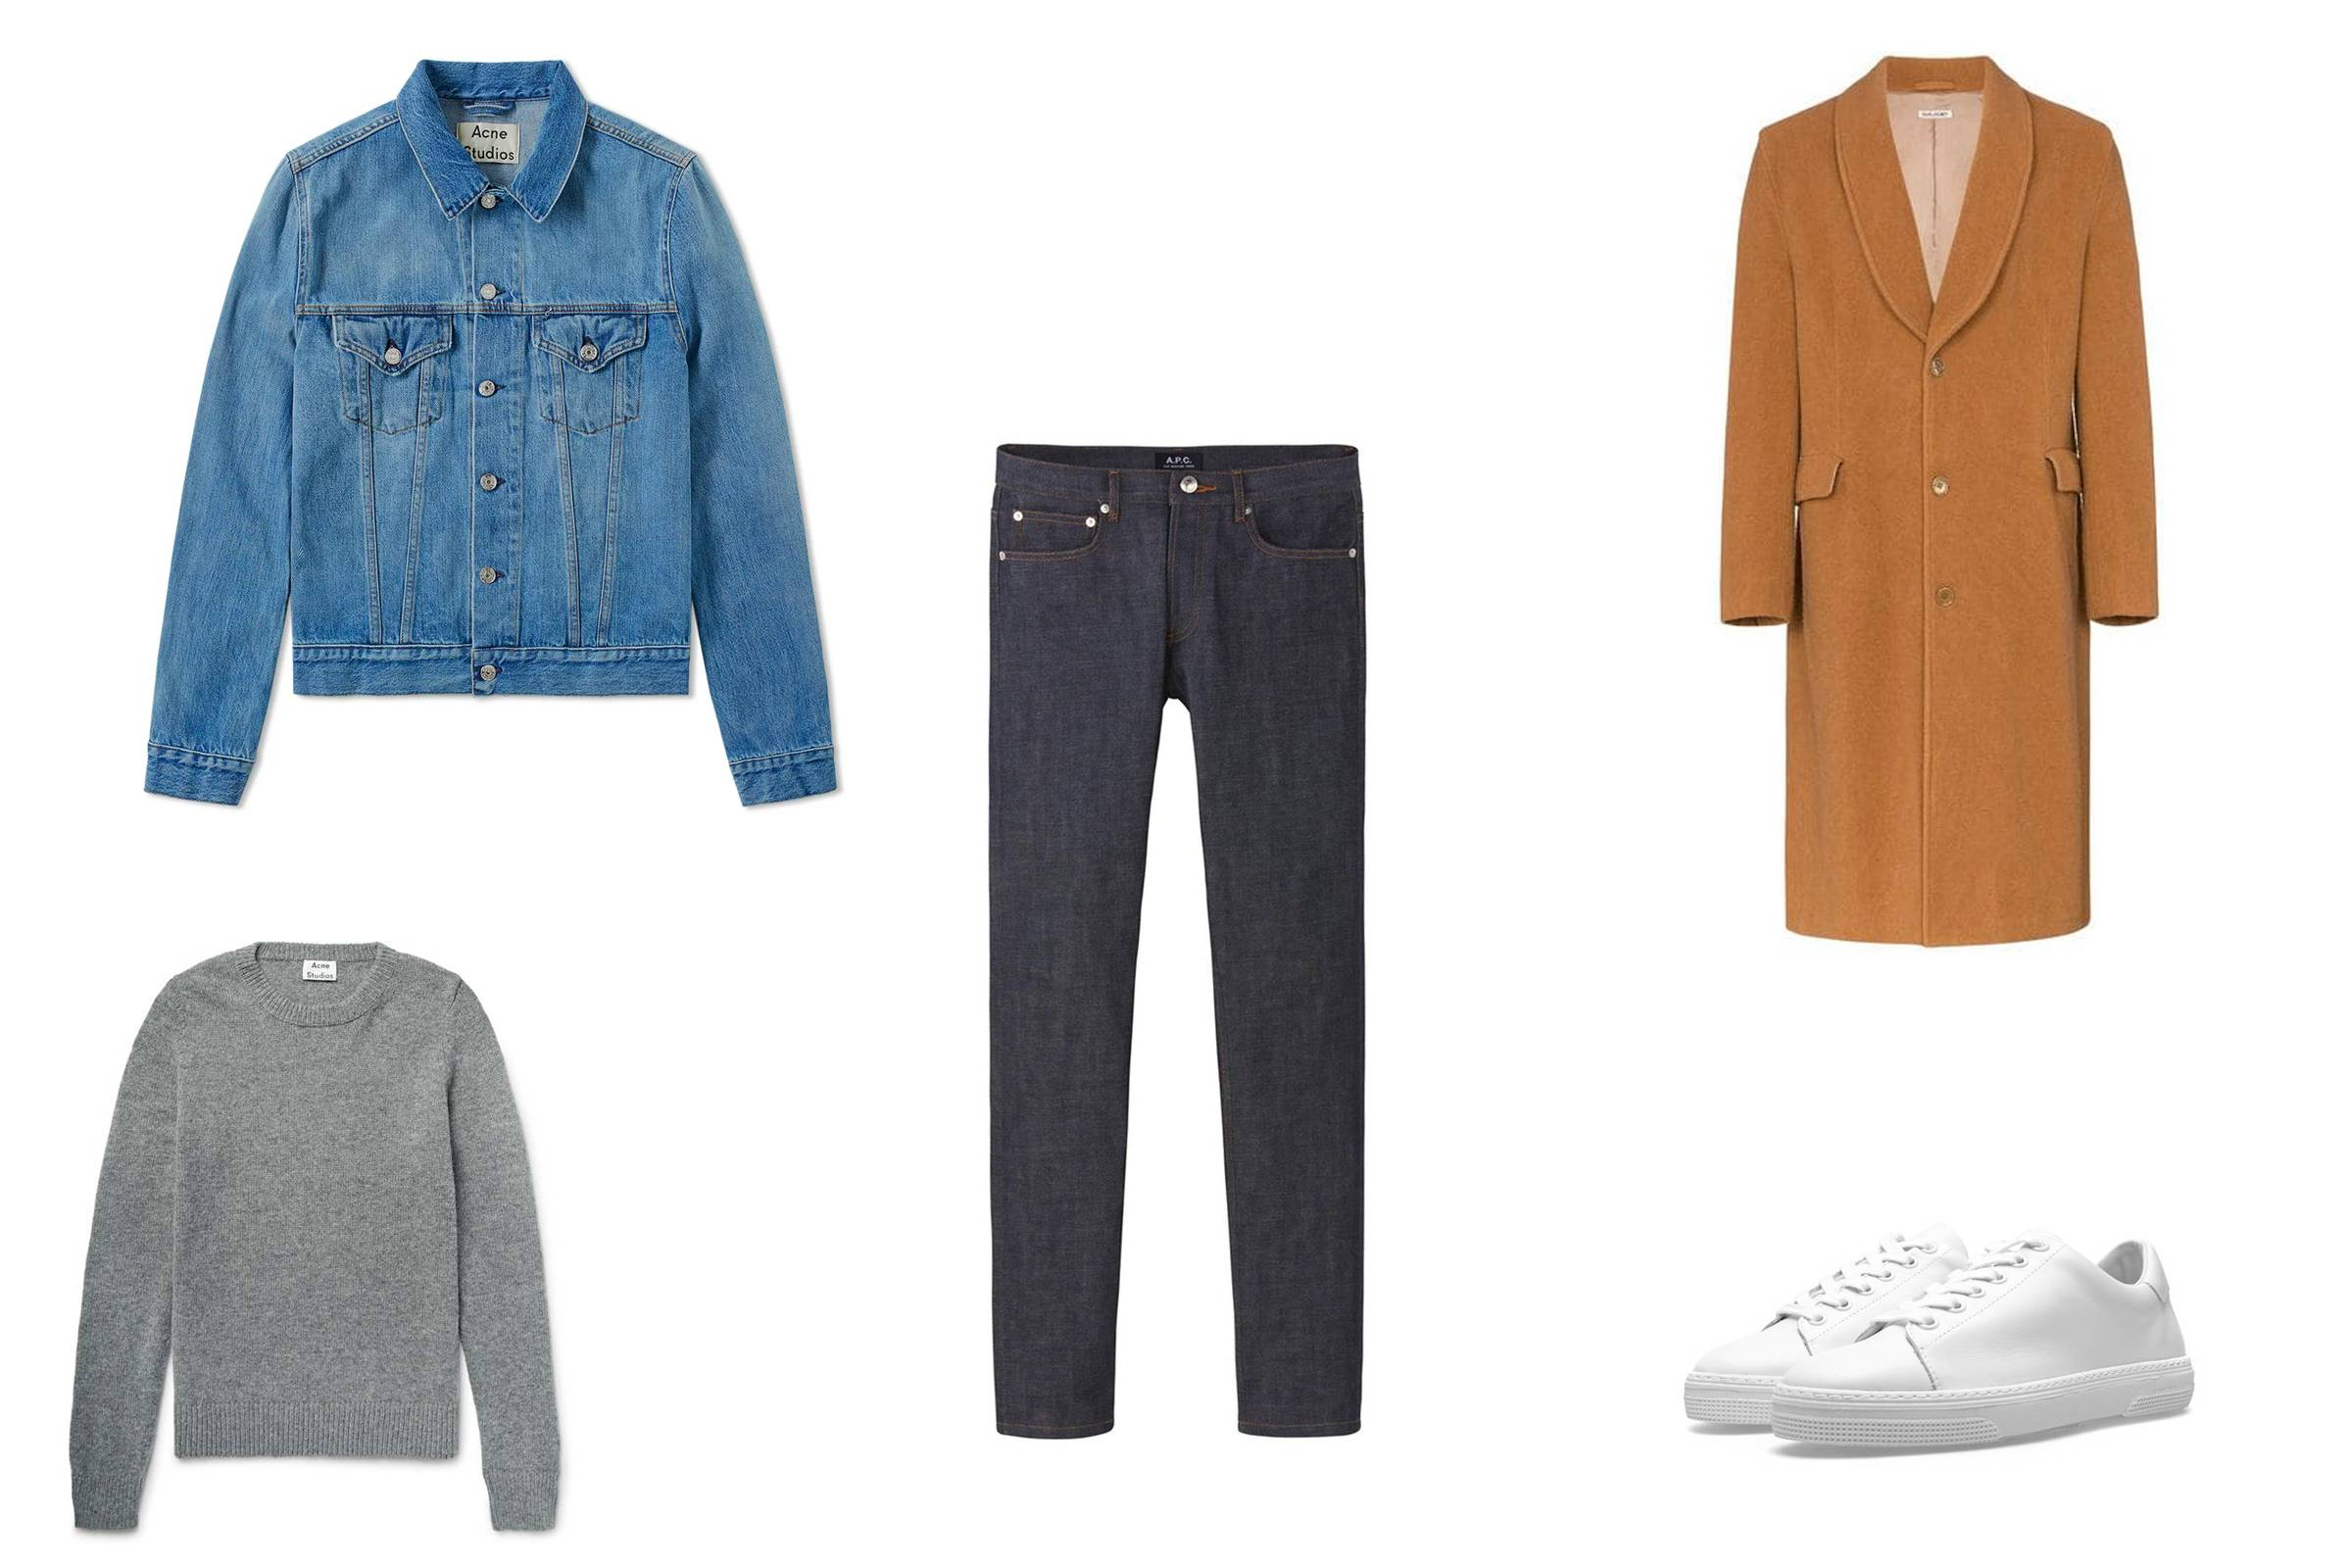 Project Upgrade: The Next Three Brands You Need on Your Style Journey